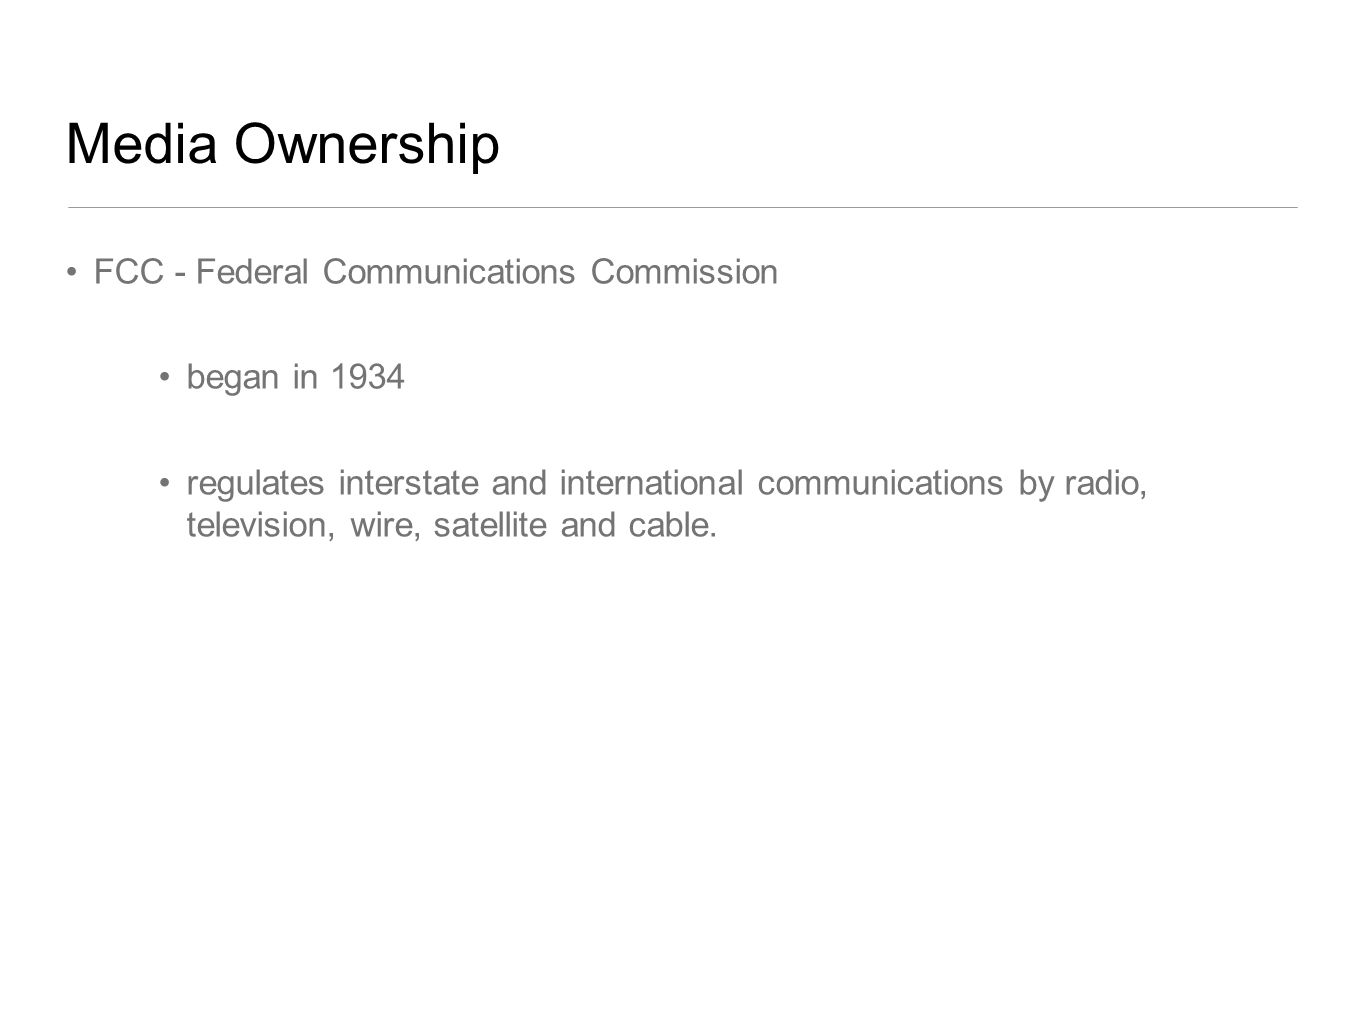 Media Ownership FCC - Federal Communications Commission began in 1934 regulates interstate and international communications by radio, television, wire